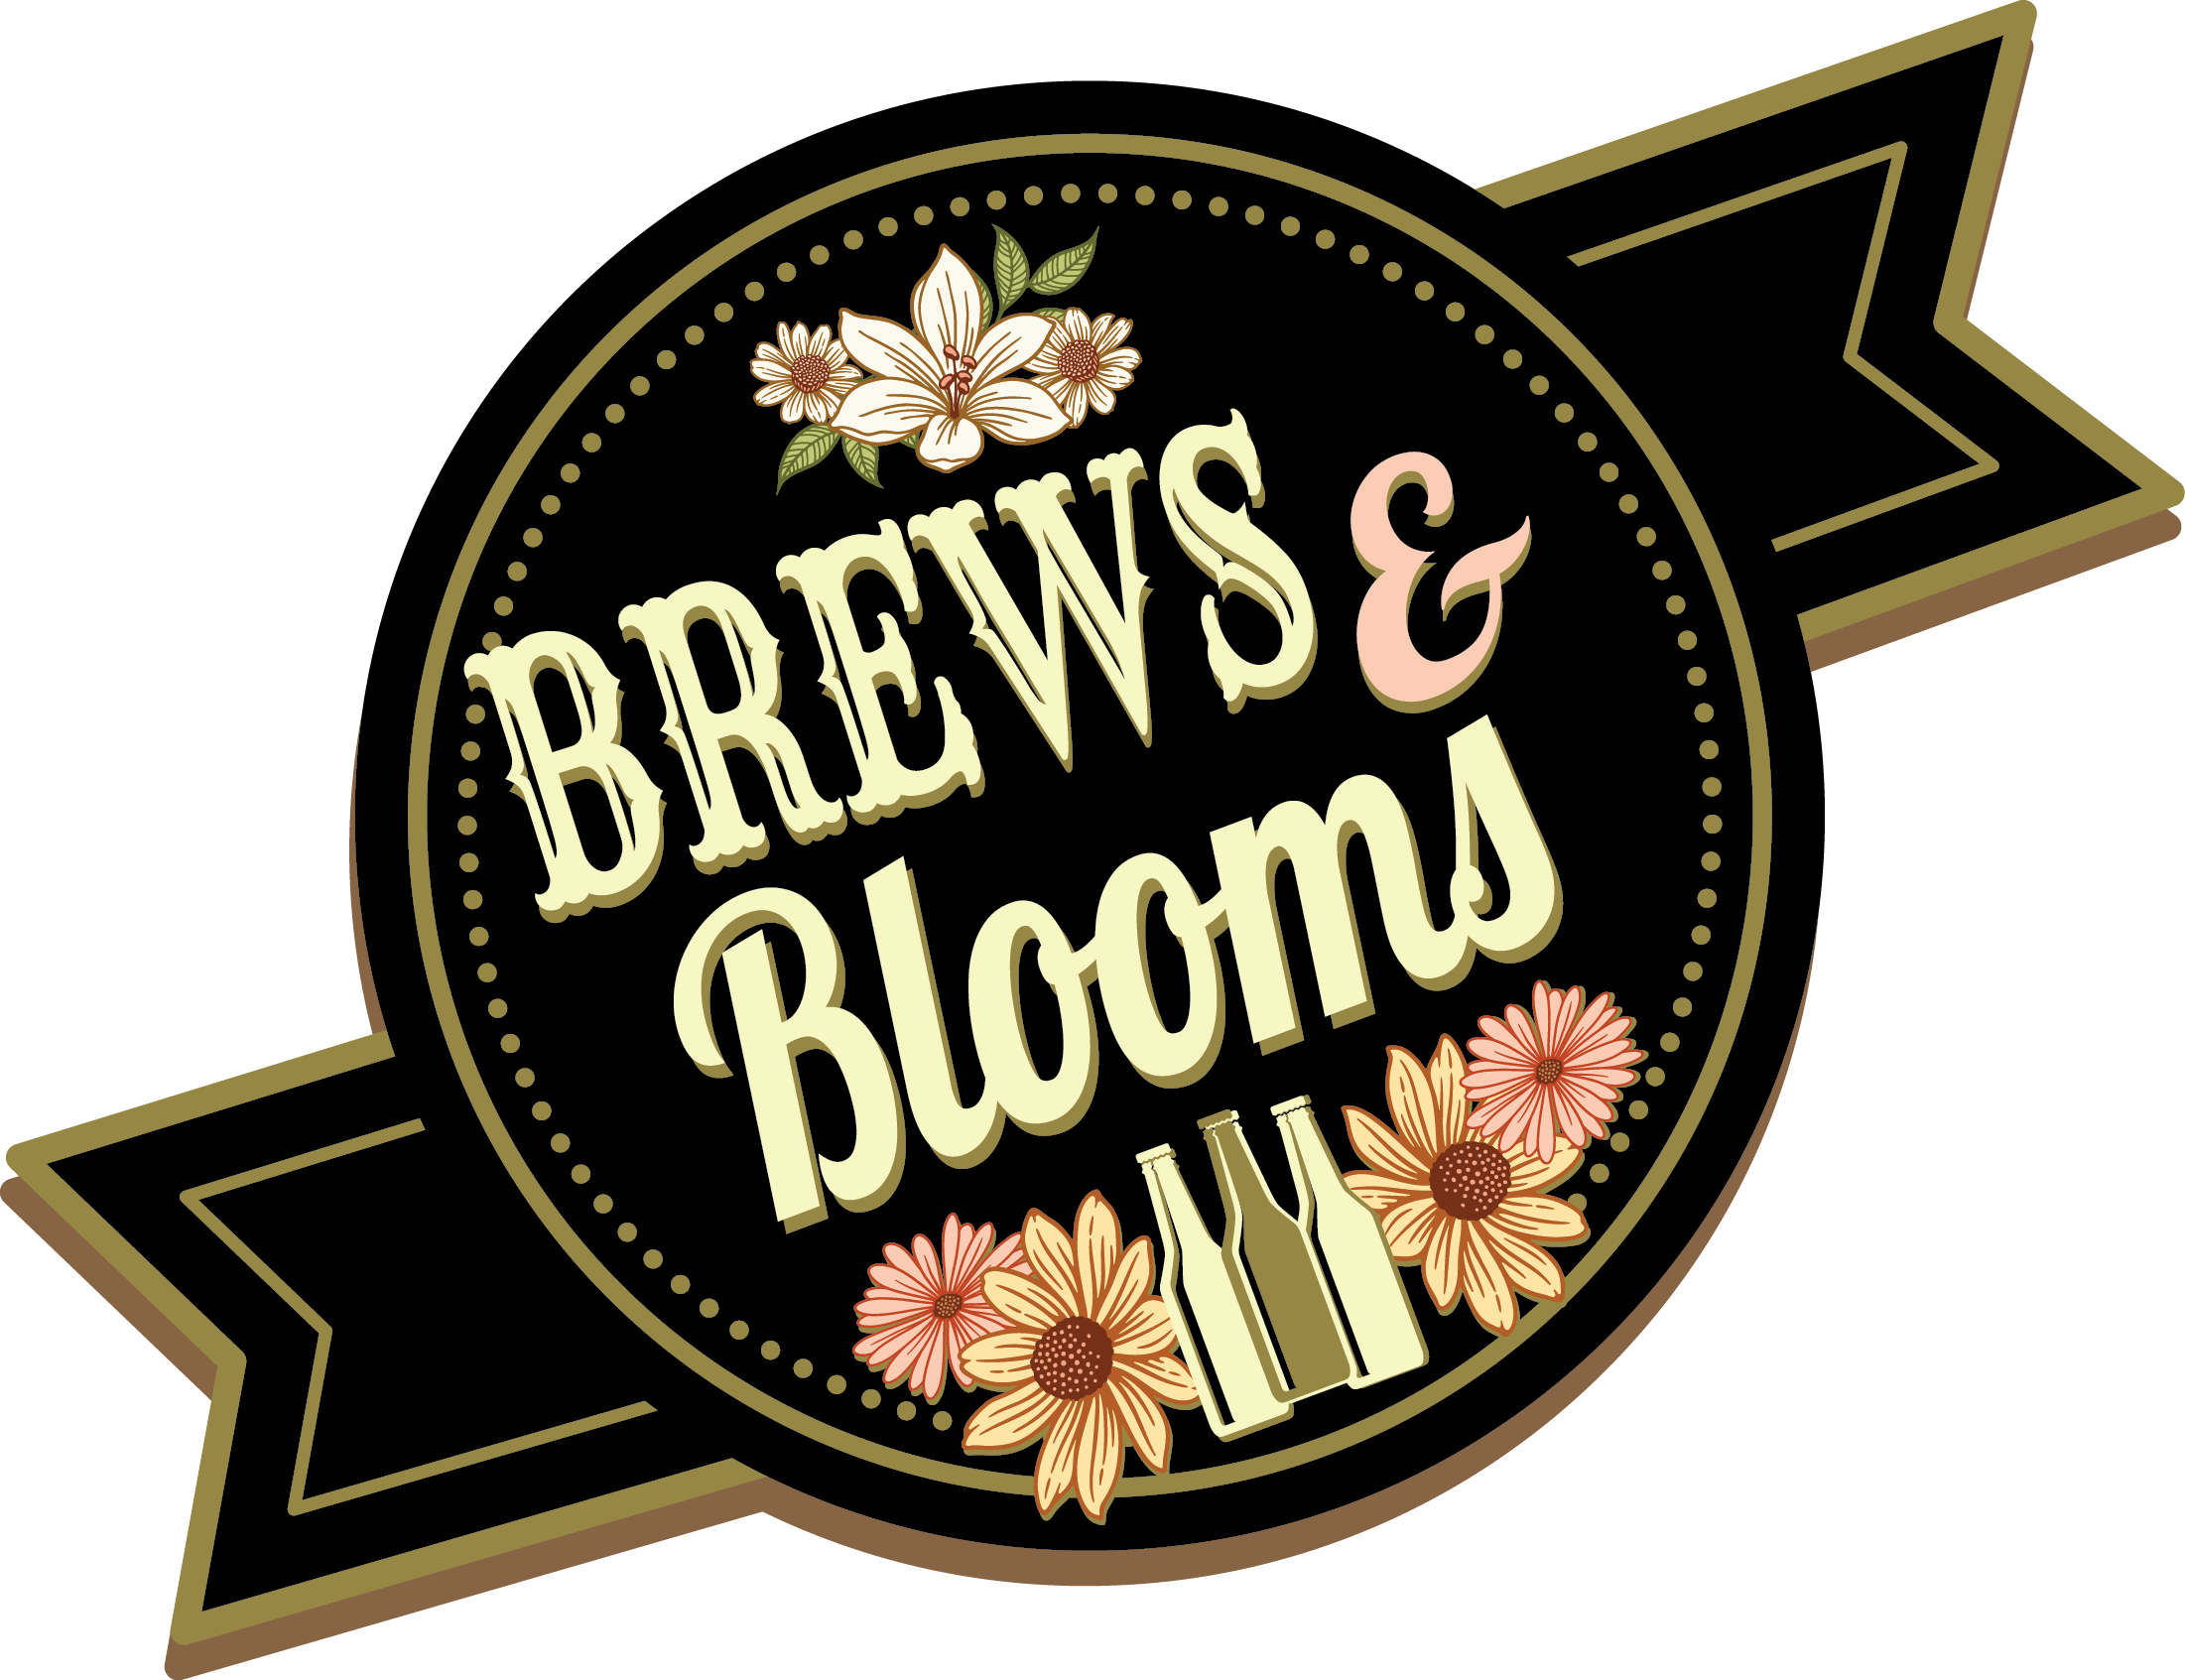 Brews & Blooms